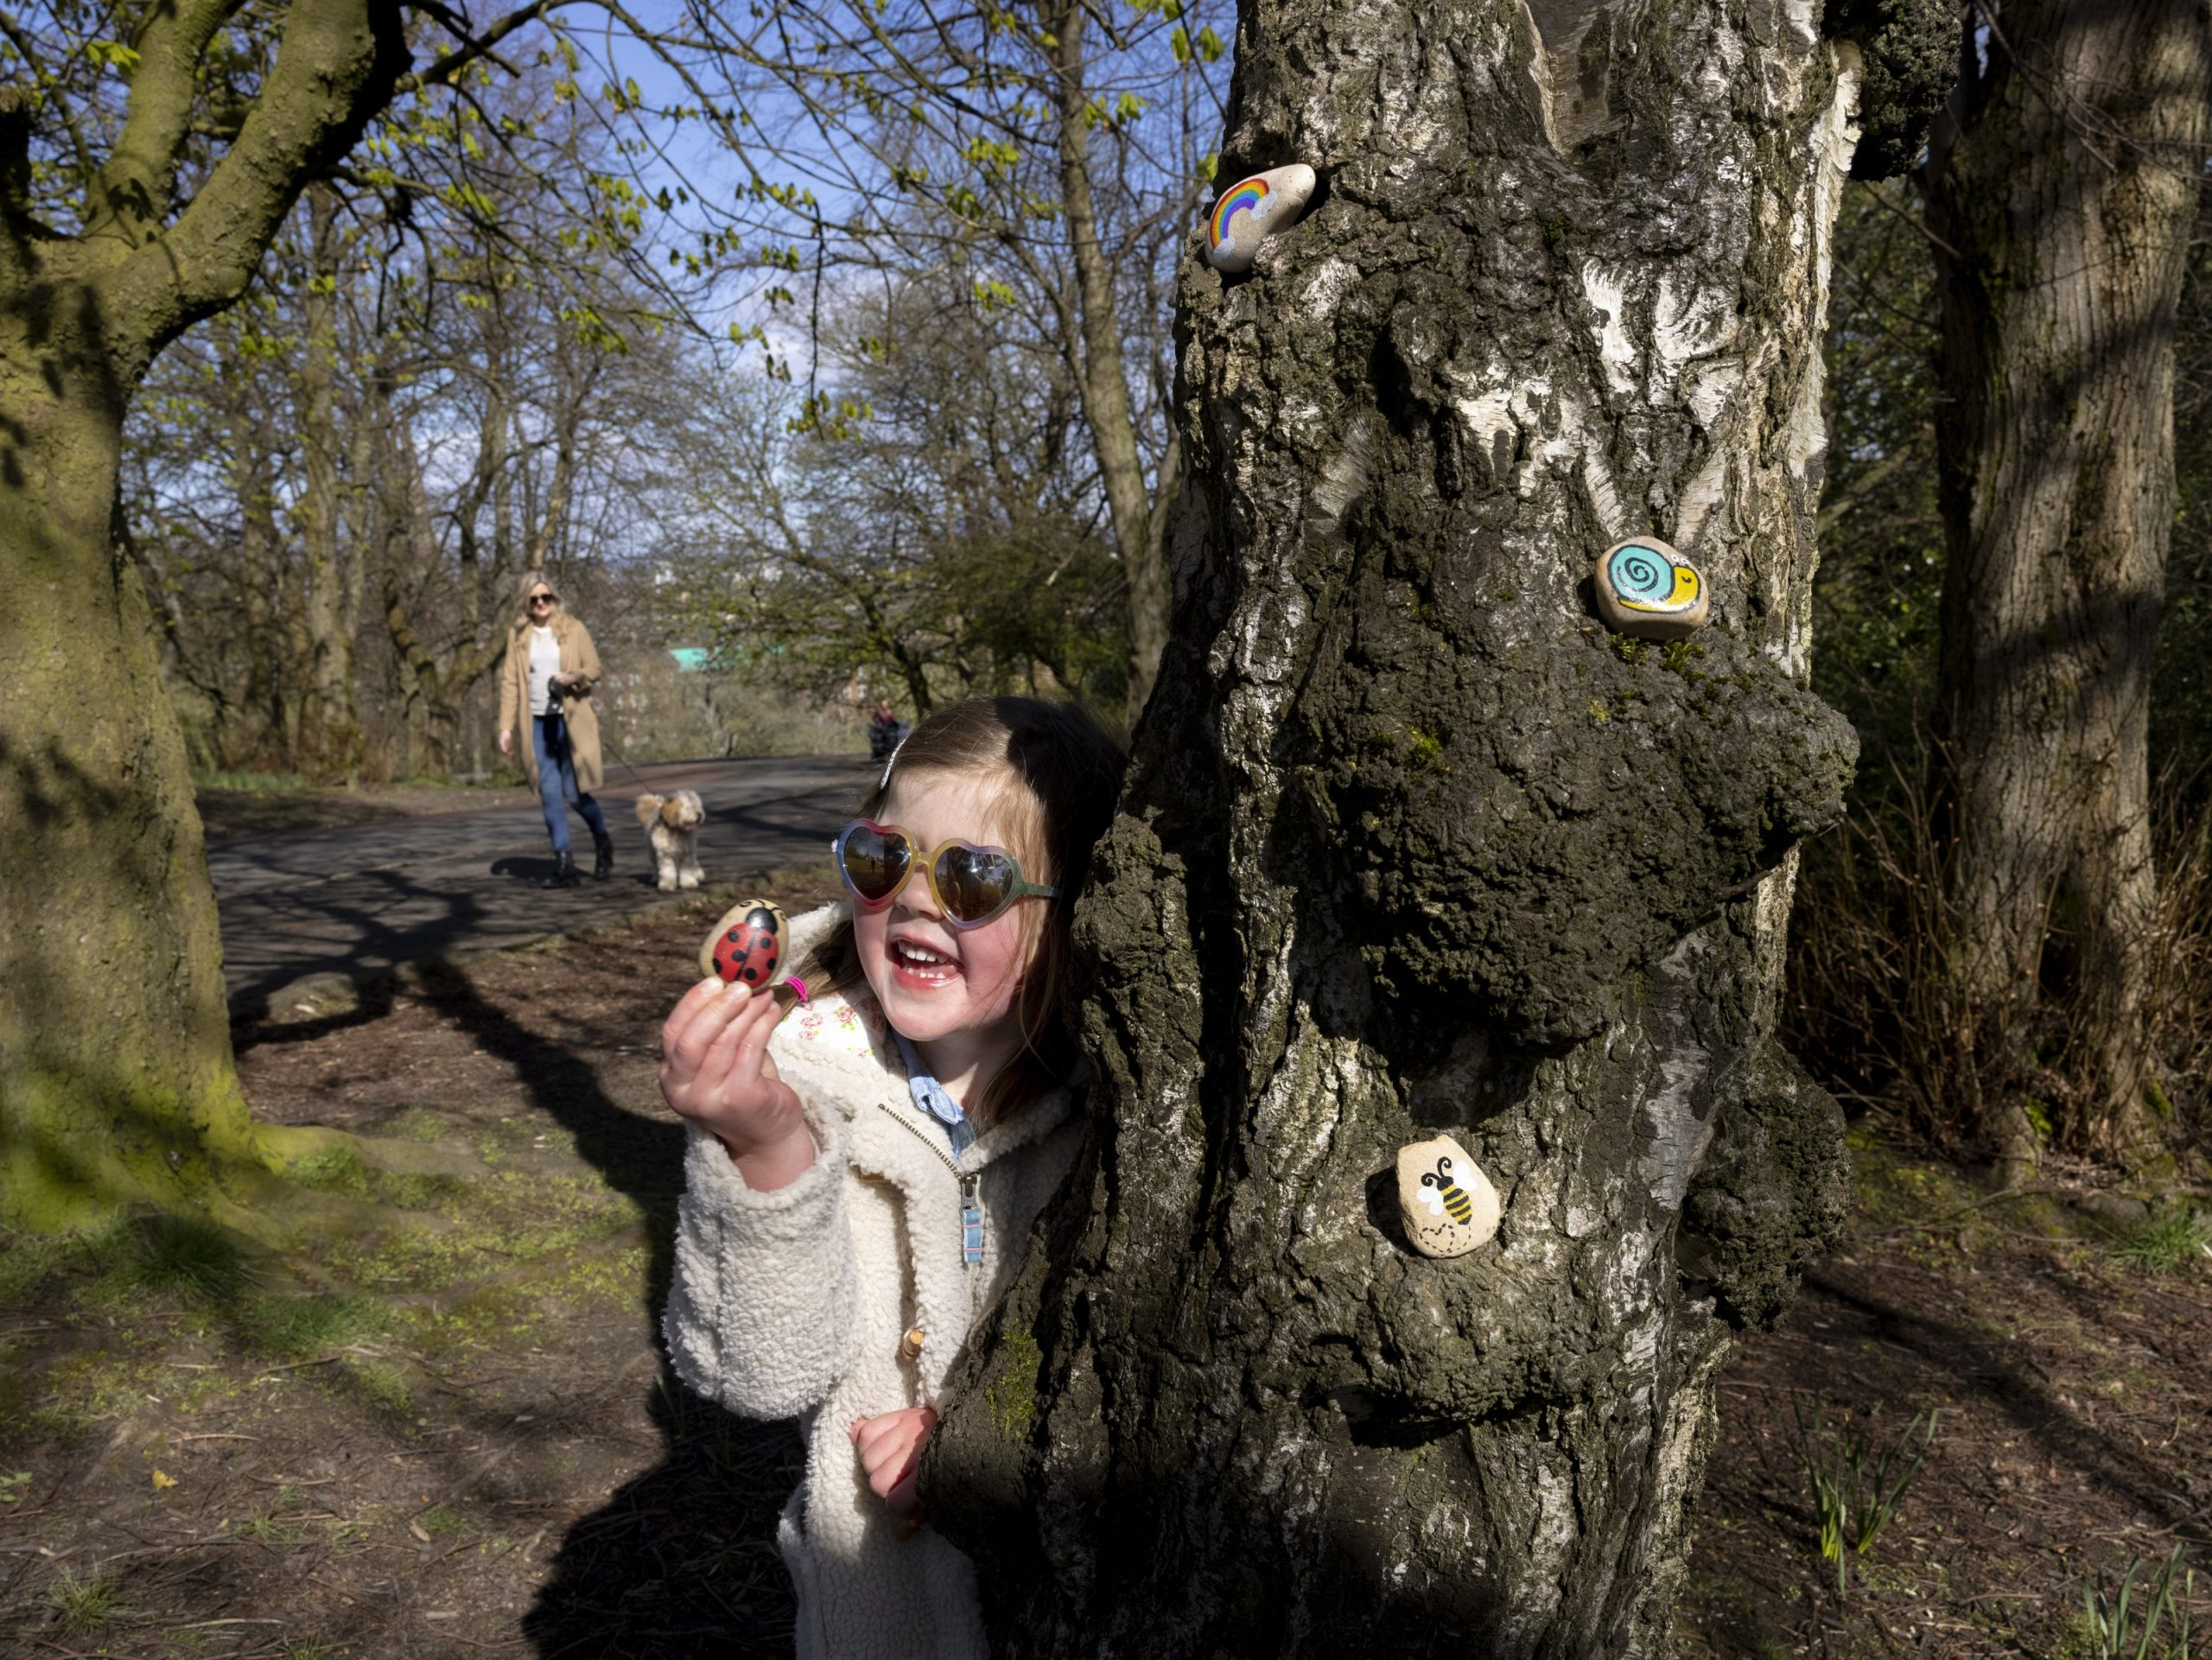 The image shows young girl searching for painted stones in a wooded area.